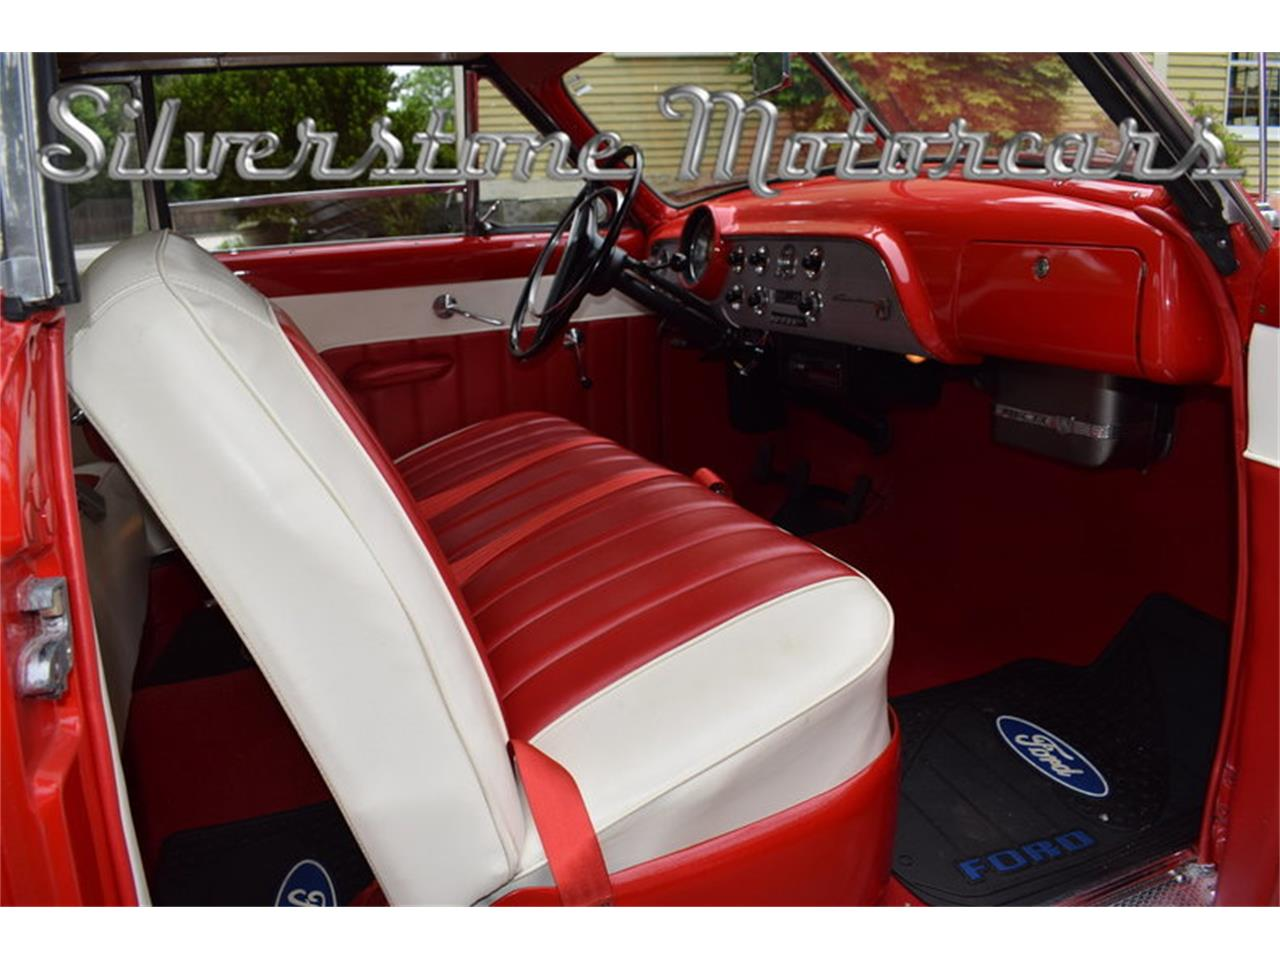 Large Picture of 1951 Ford Custom Deluxe located in Massachusetts Offered by Silverstone Motorcars - L79S